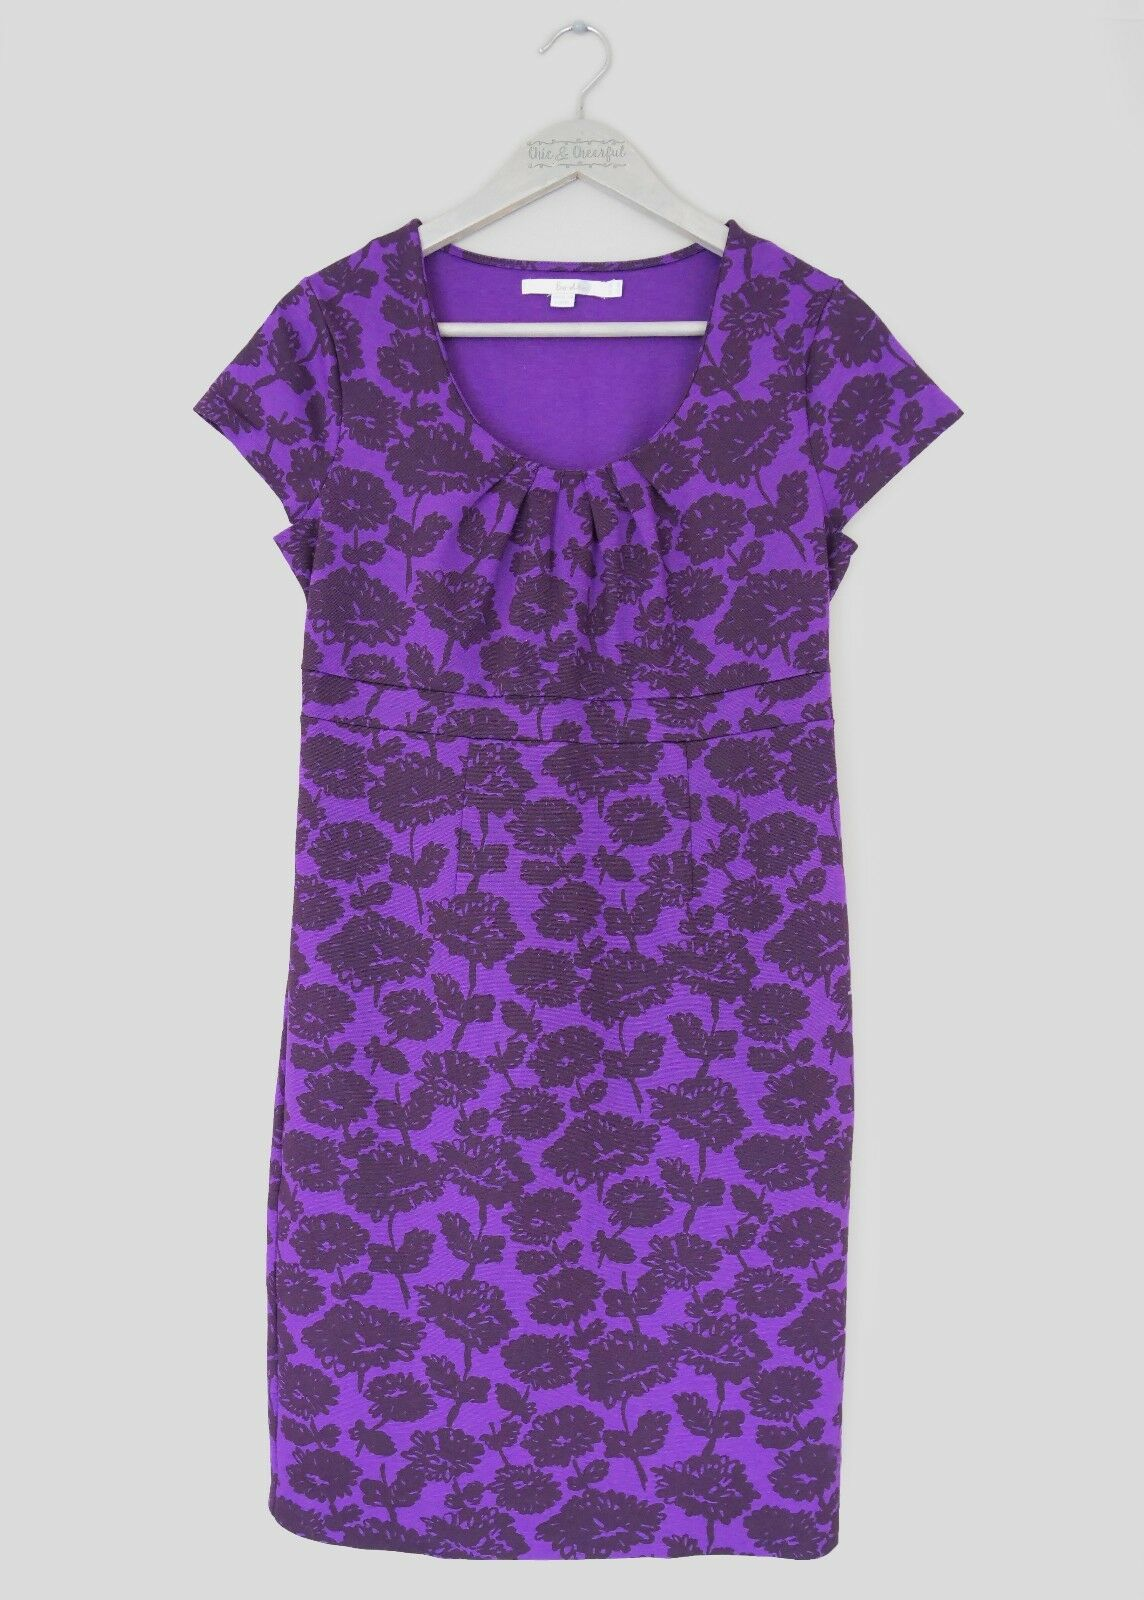 BODEN WOMENS 'UPTOWN' PURPLE FLORAL JERSEY EMPIRE LINE PENCIL DRESS -